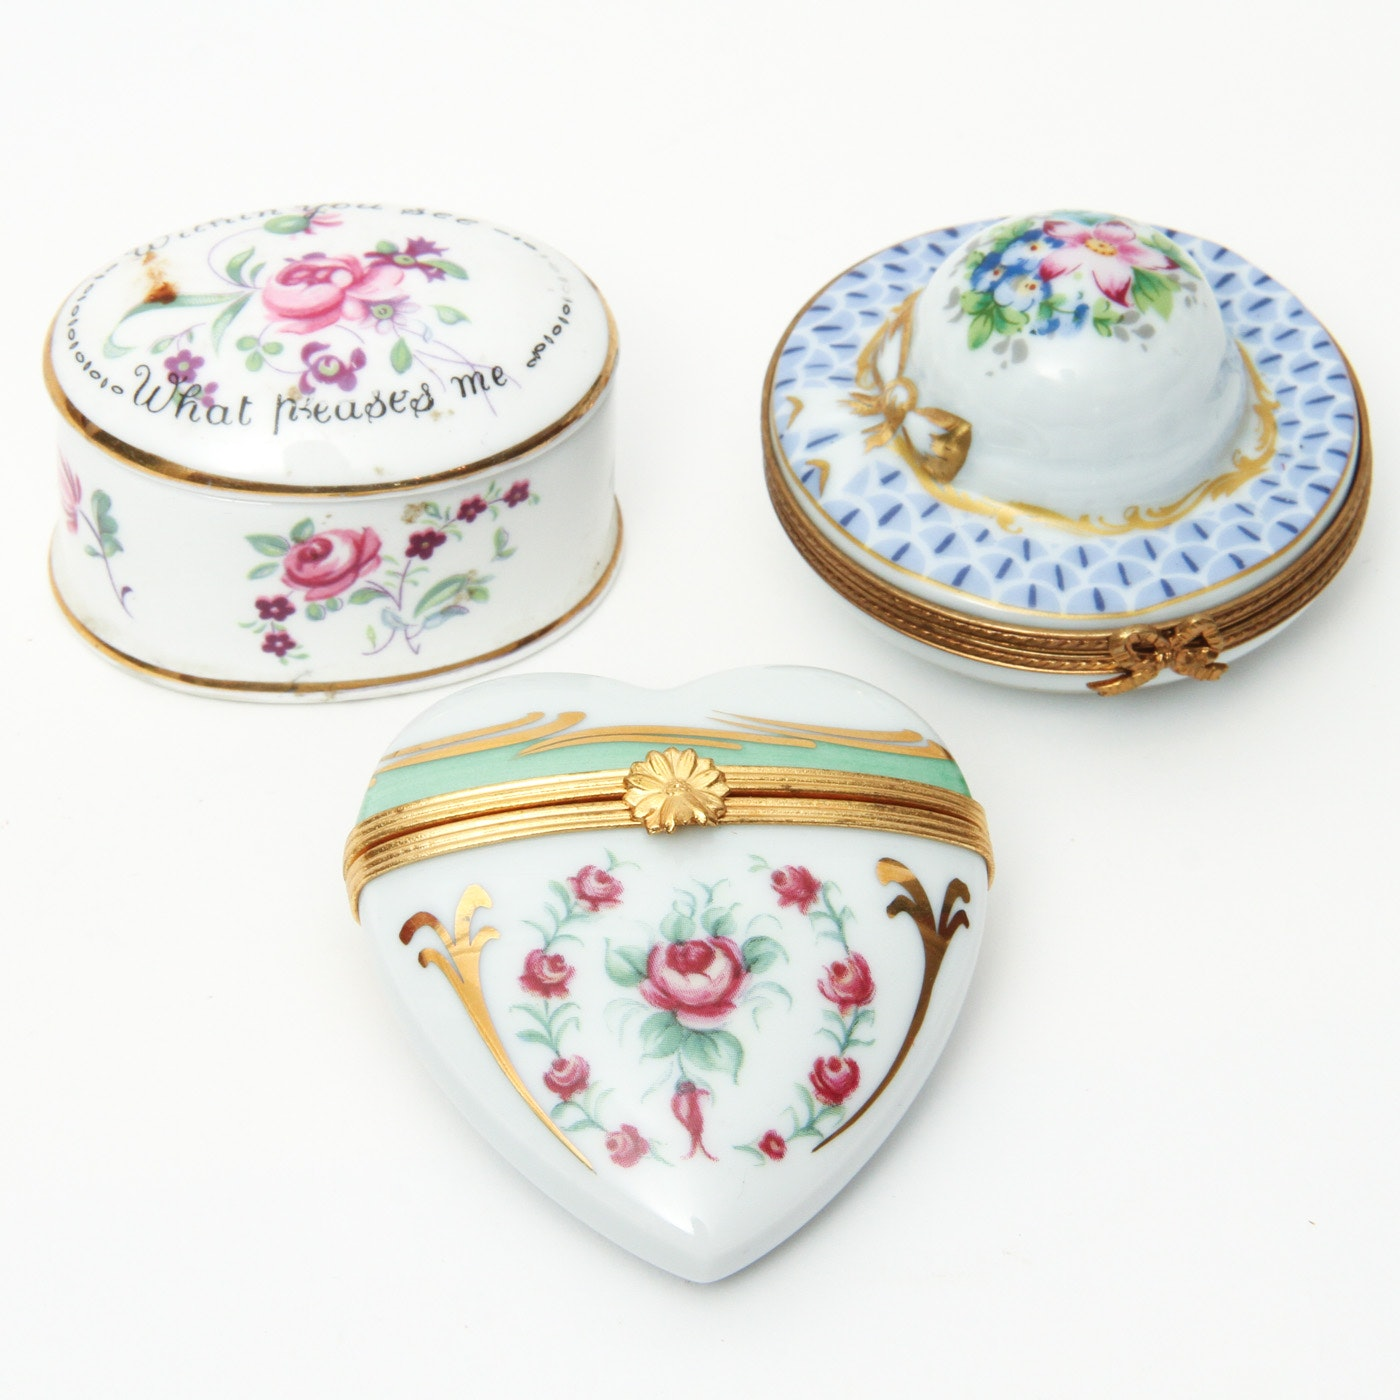 Collection of Trinket Boxes Including Limoges and Staffordshire